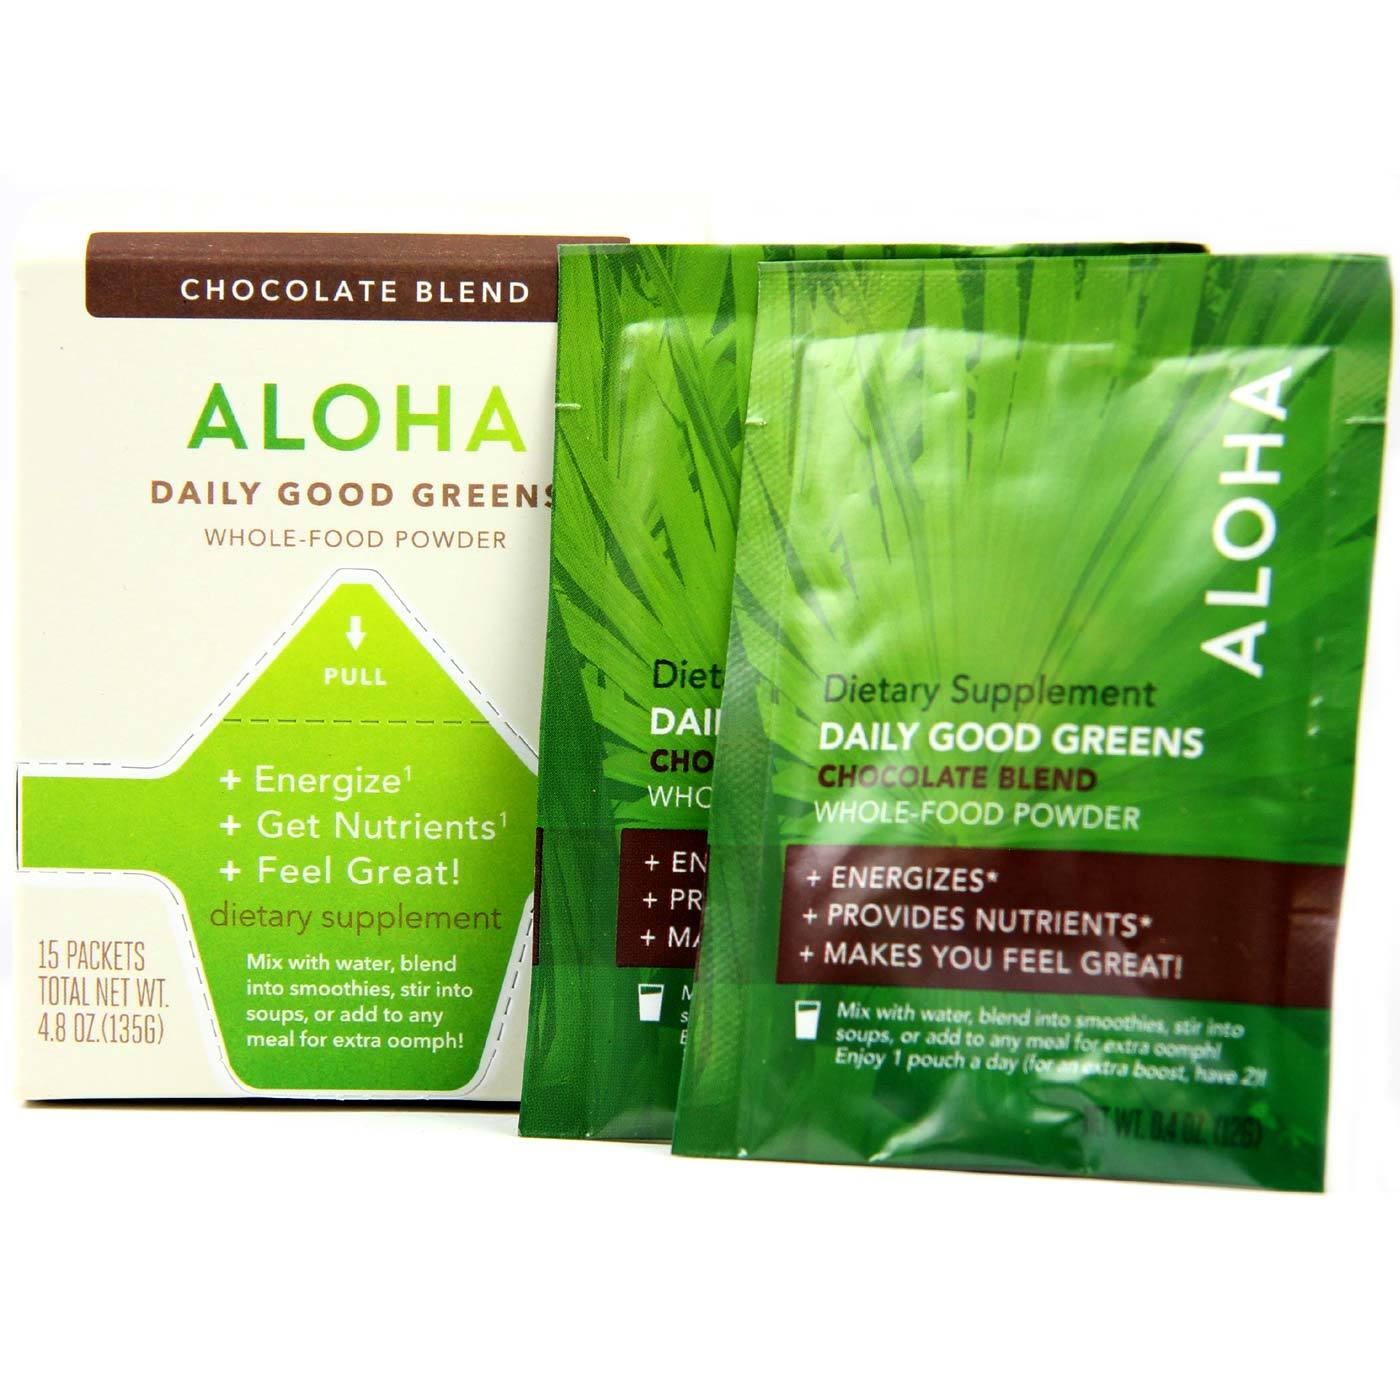 Buy Aloha Daily Good Greens, Original - 15 Packets at the lowest price from eVitamins. Find Daily Good Greens, Original reviews, side effects, coupons and more from eVitamins.